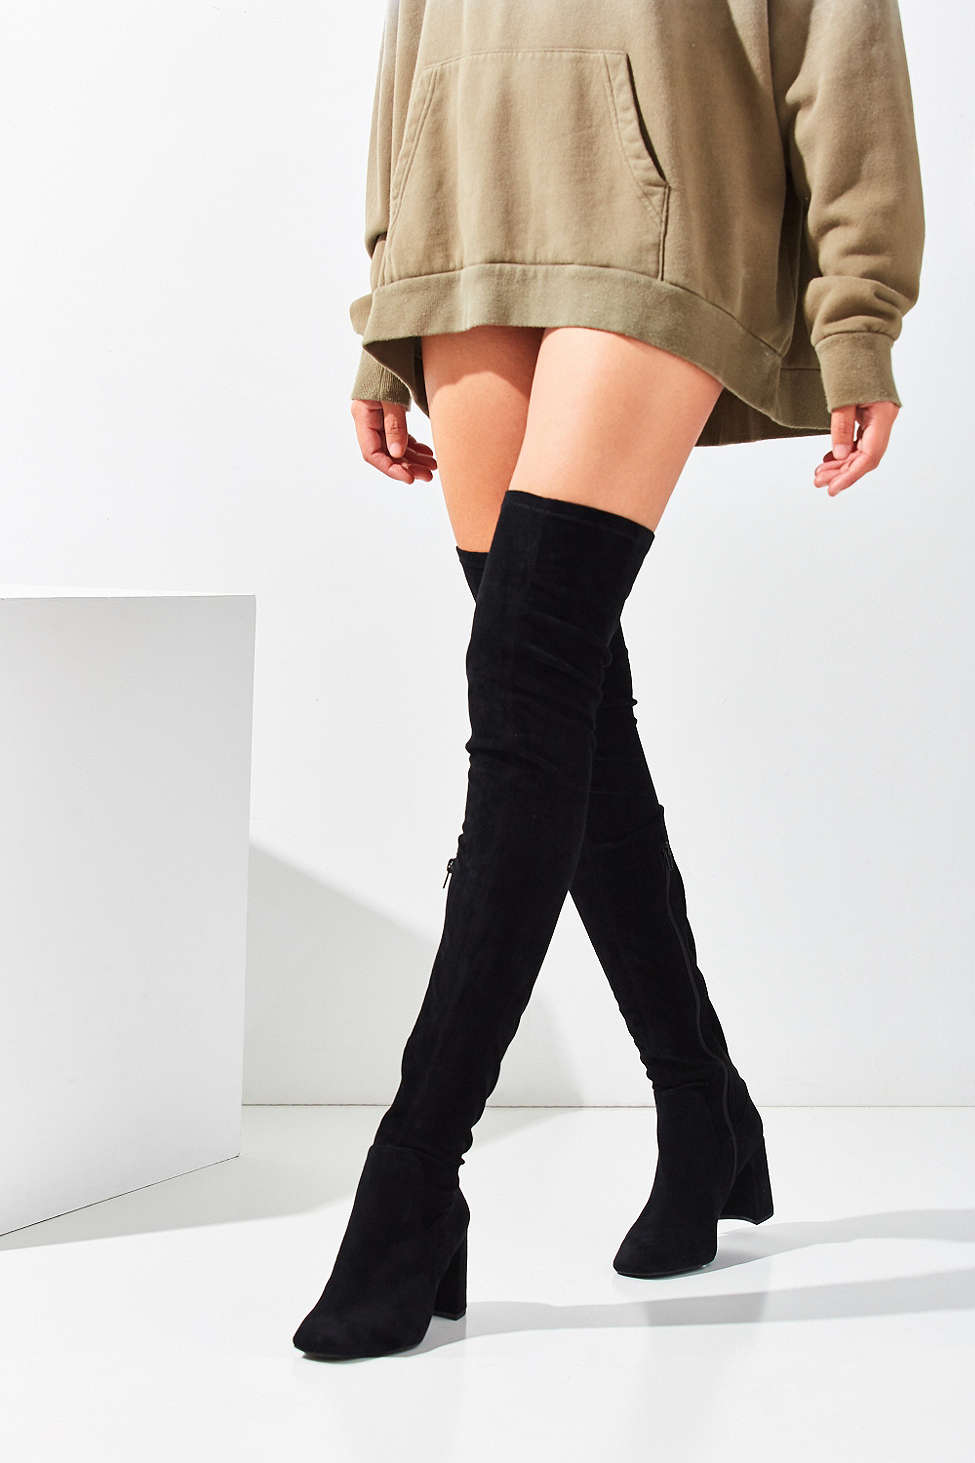 tights wear thigh high boots instead racked